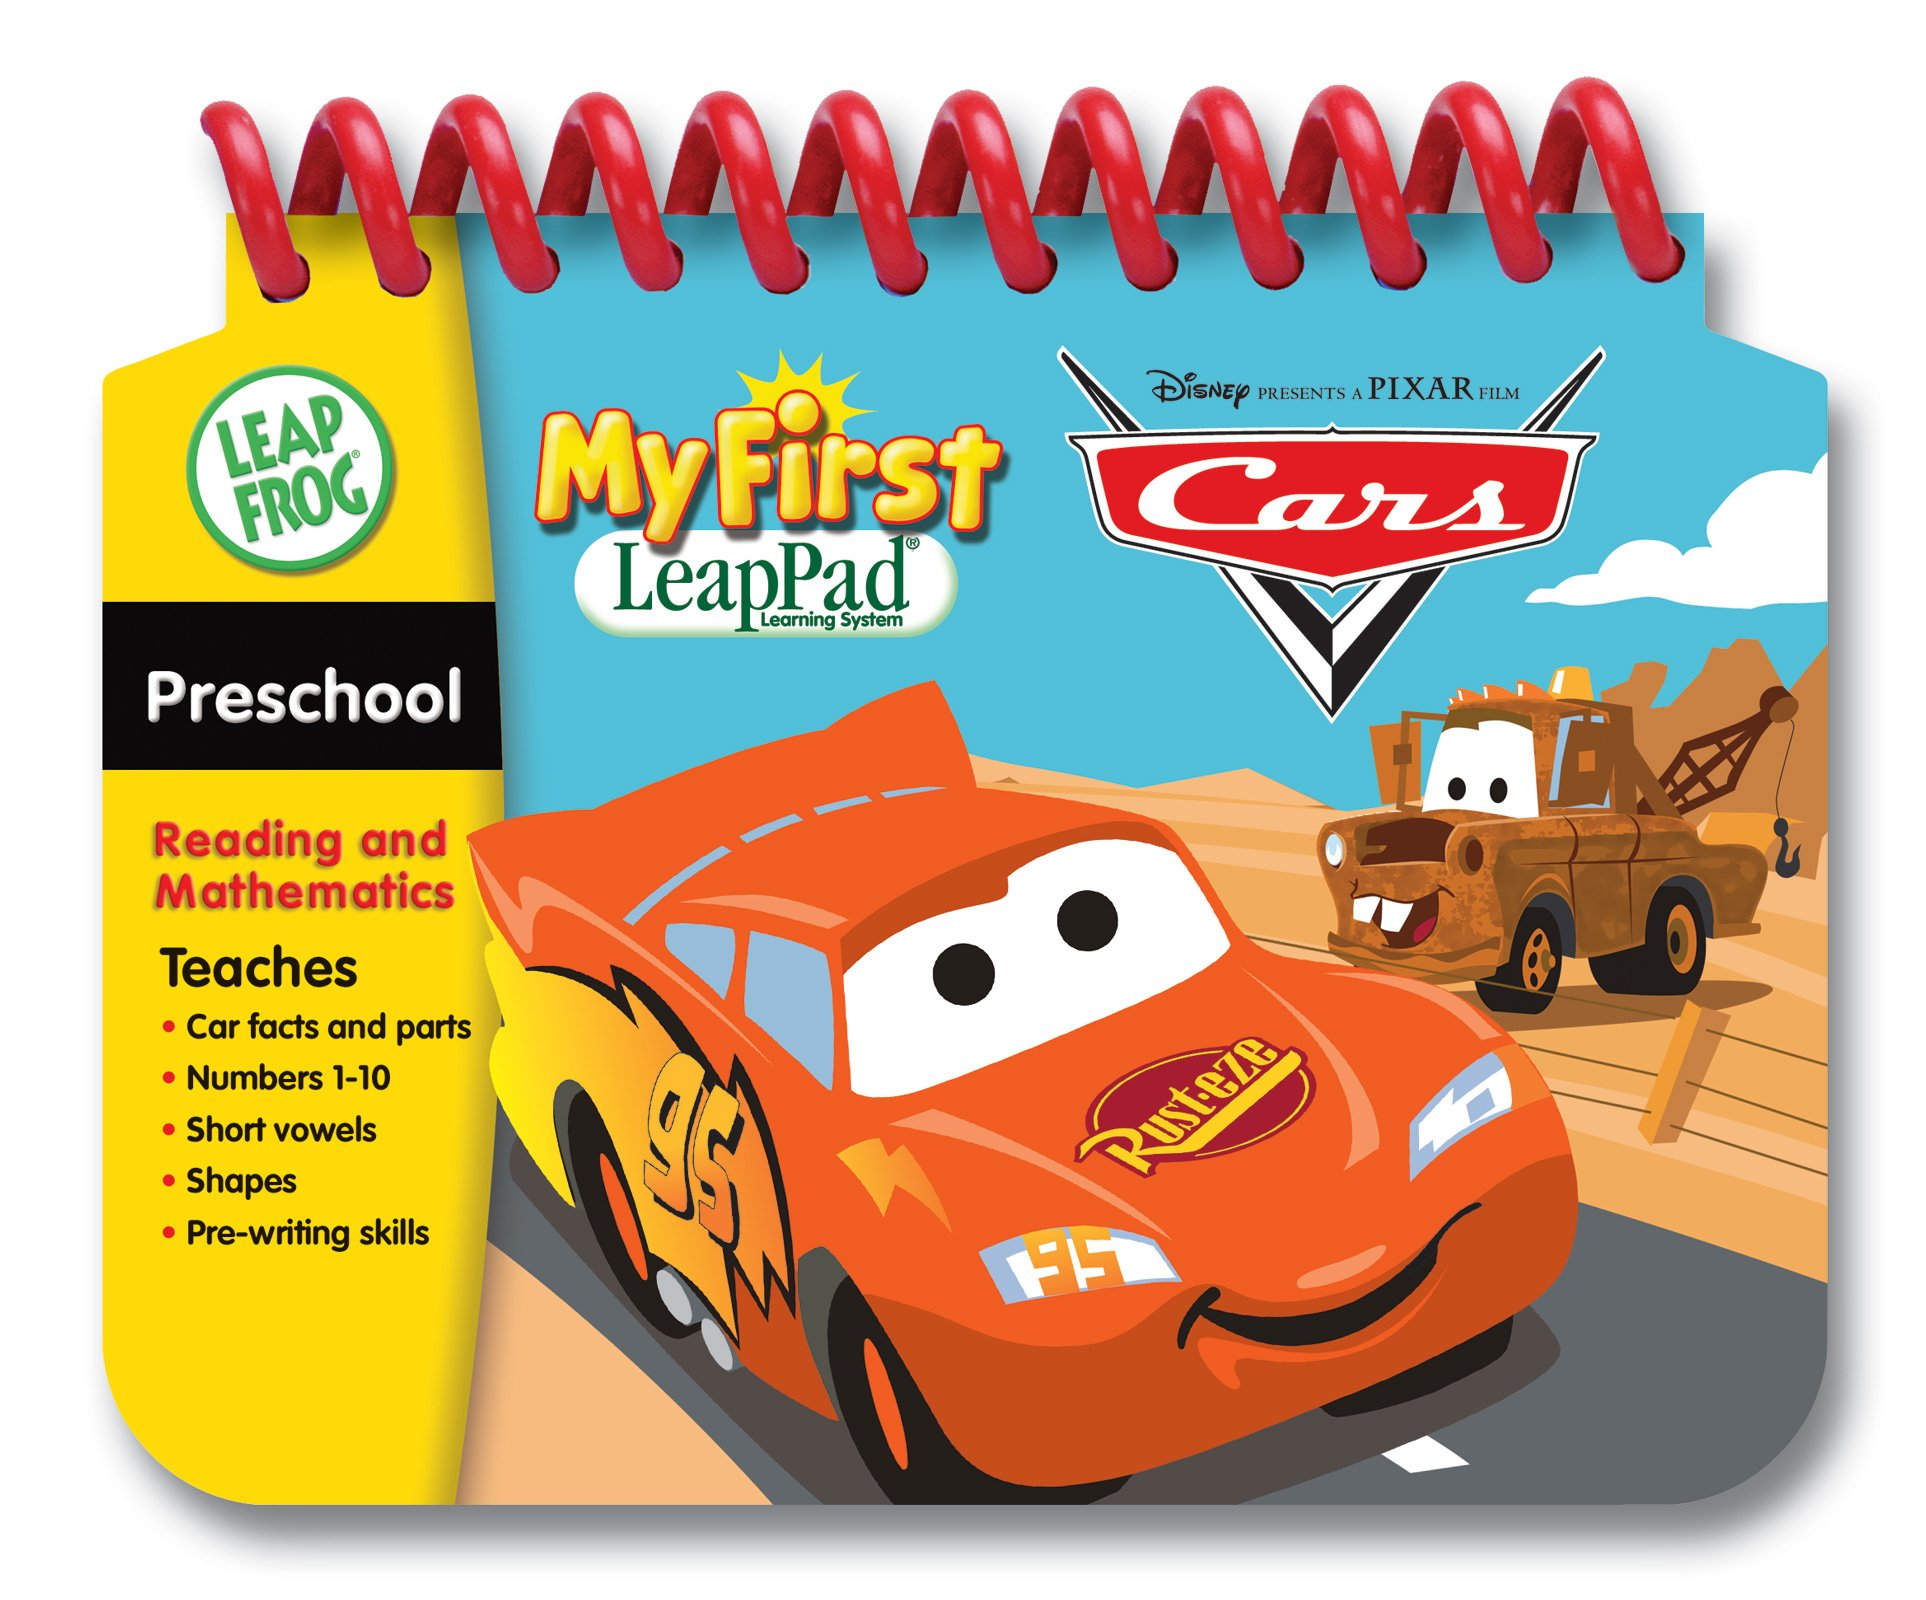 LeapFrog My First LeapPad Educational Book: Cars